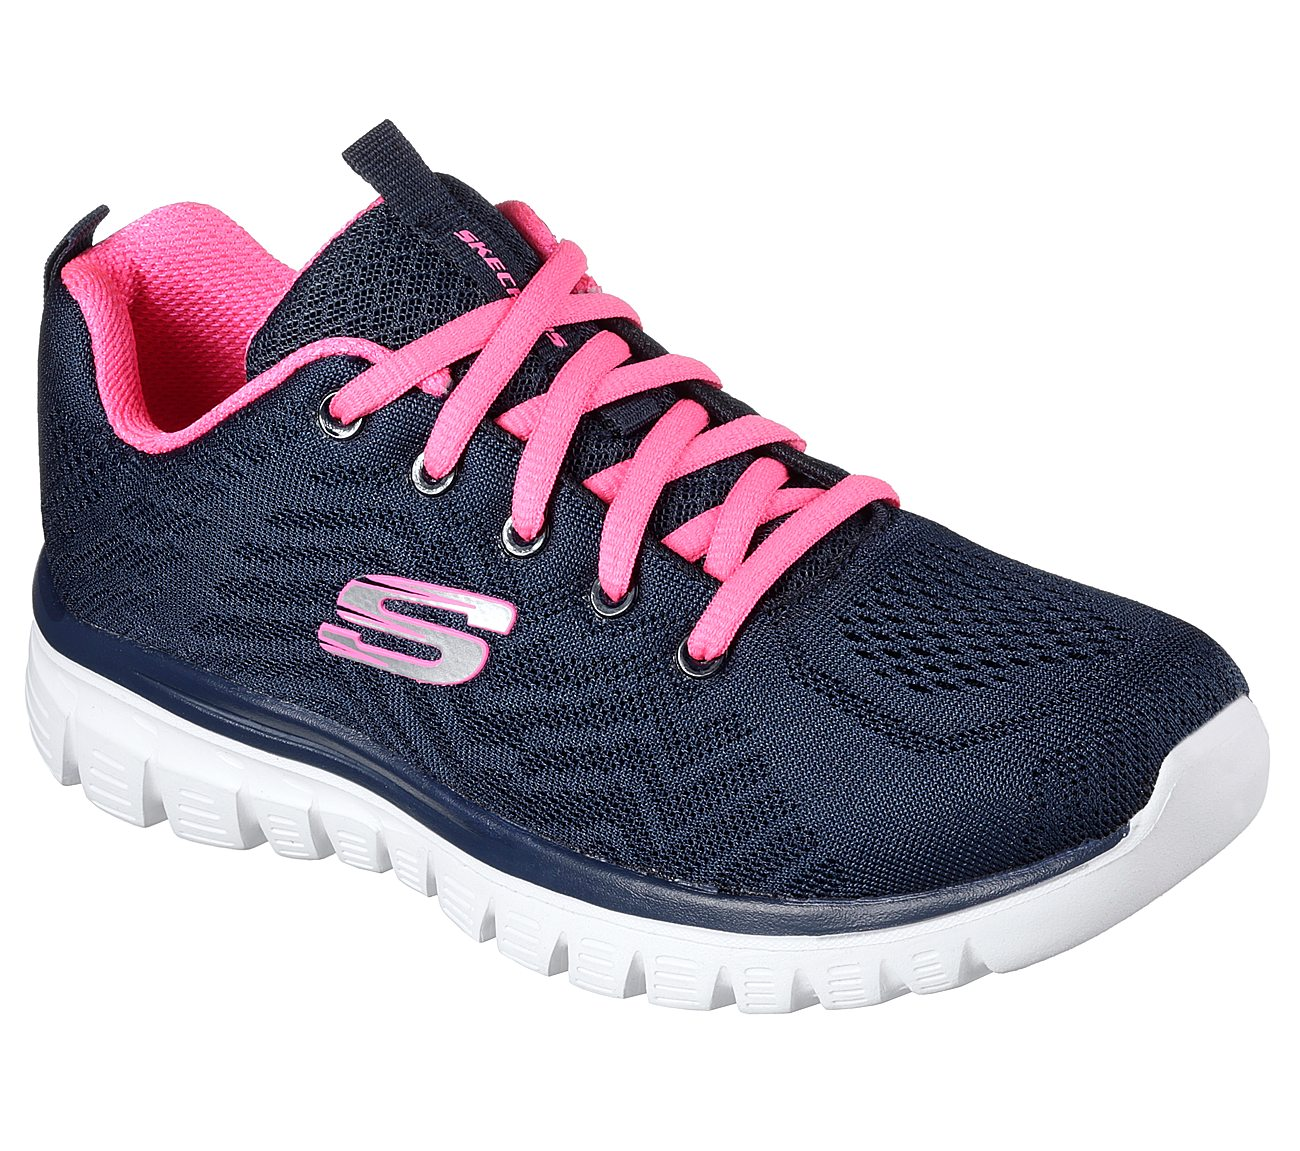 Skechers Damen Graceful get Connected 12615 Sneaker